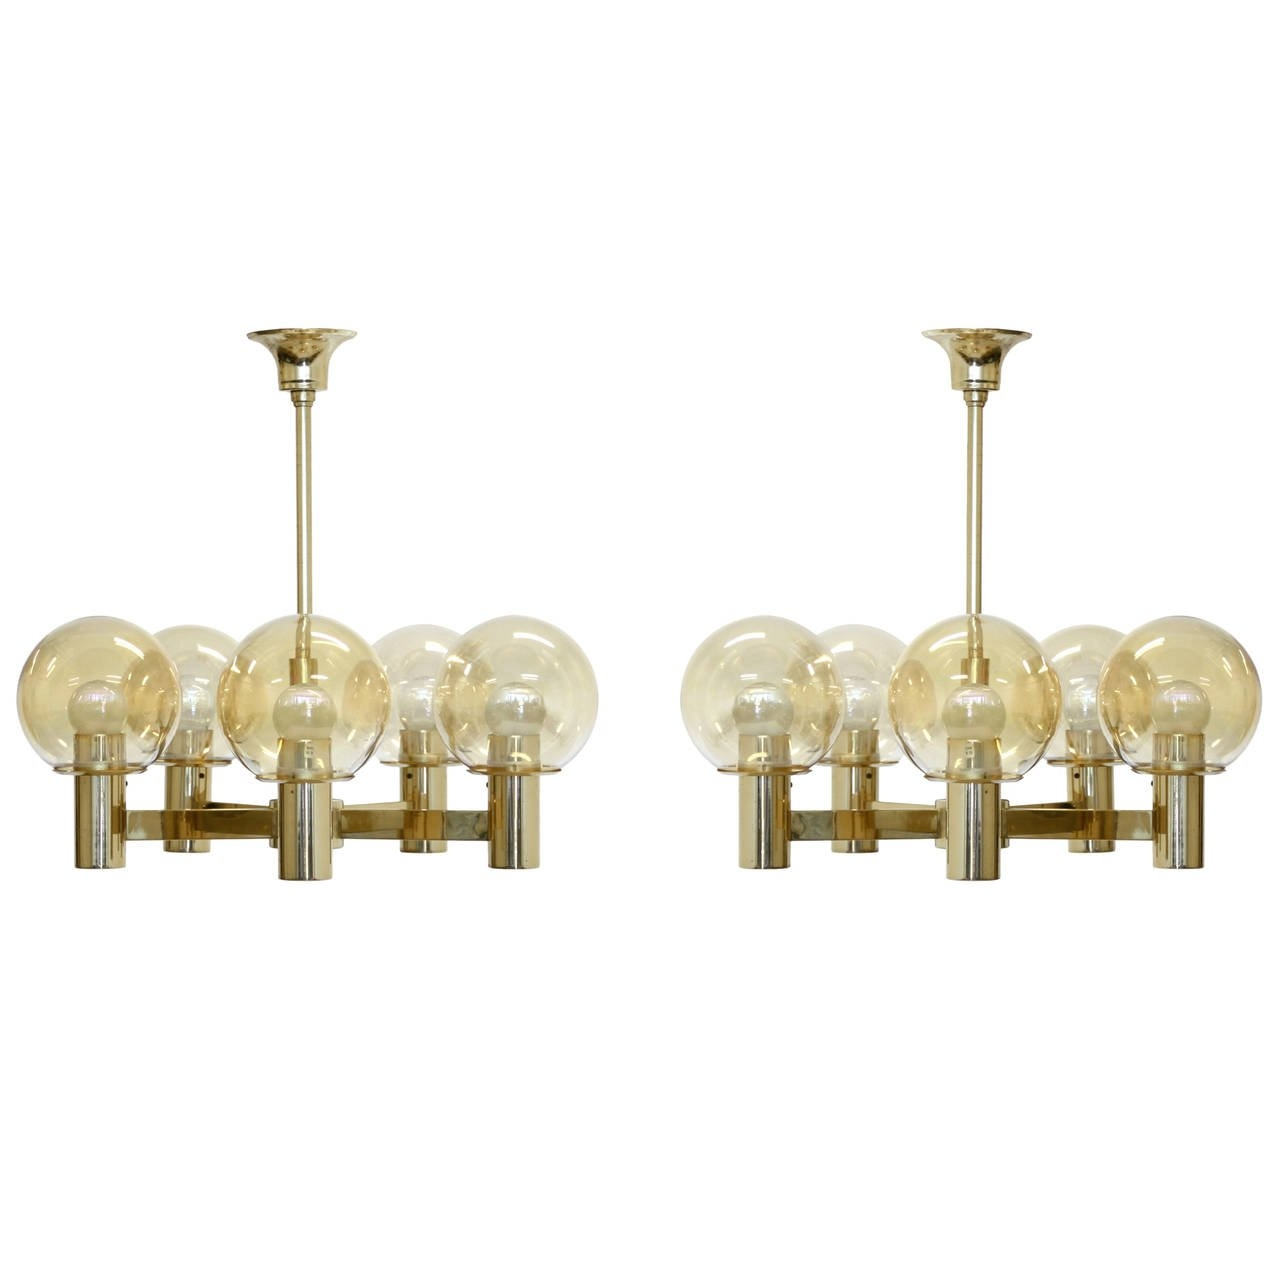 Pair Of Brass Chandeliers Hvik Lys At 1stdibs Pertaining To Brass Chandeliers (View 2 of 15)